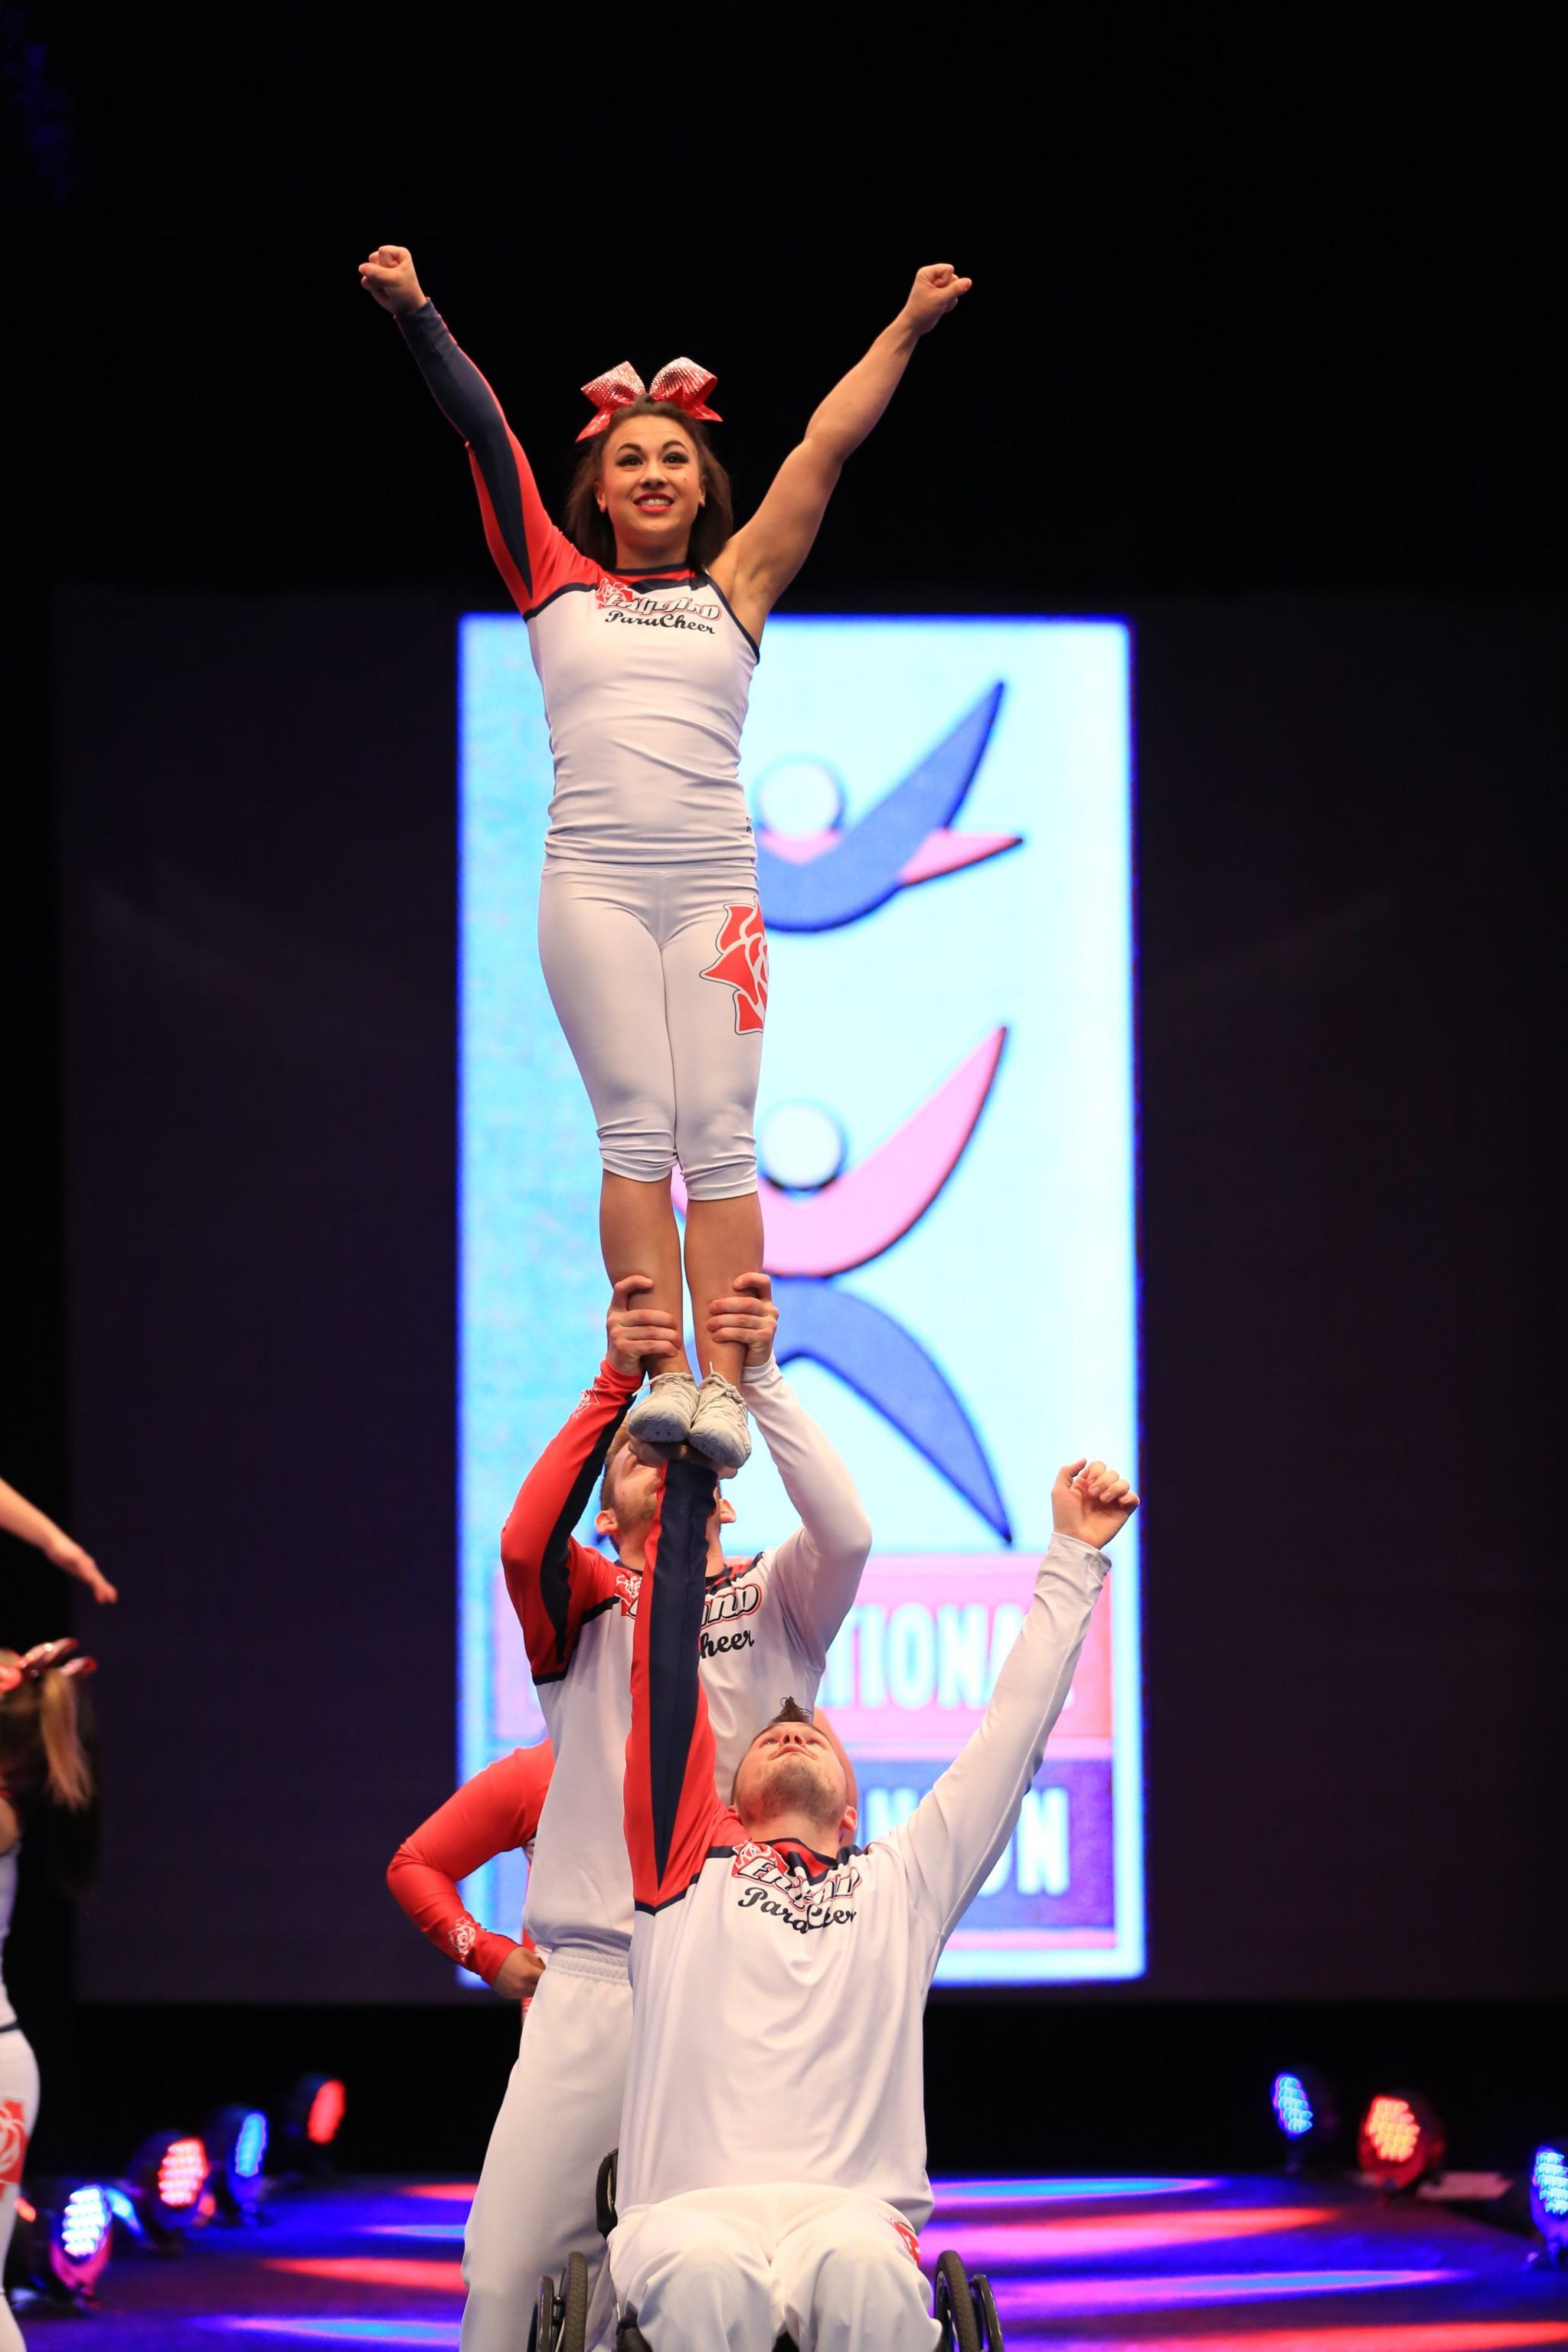 Rick performing with Team England ParaCheer